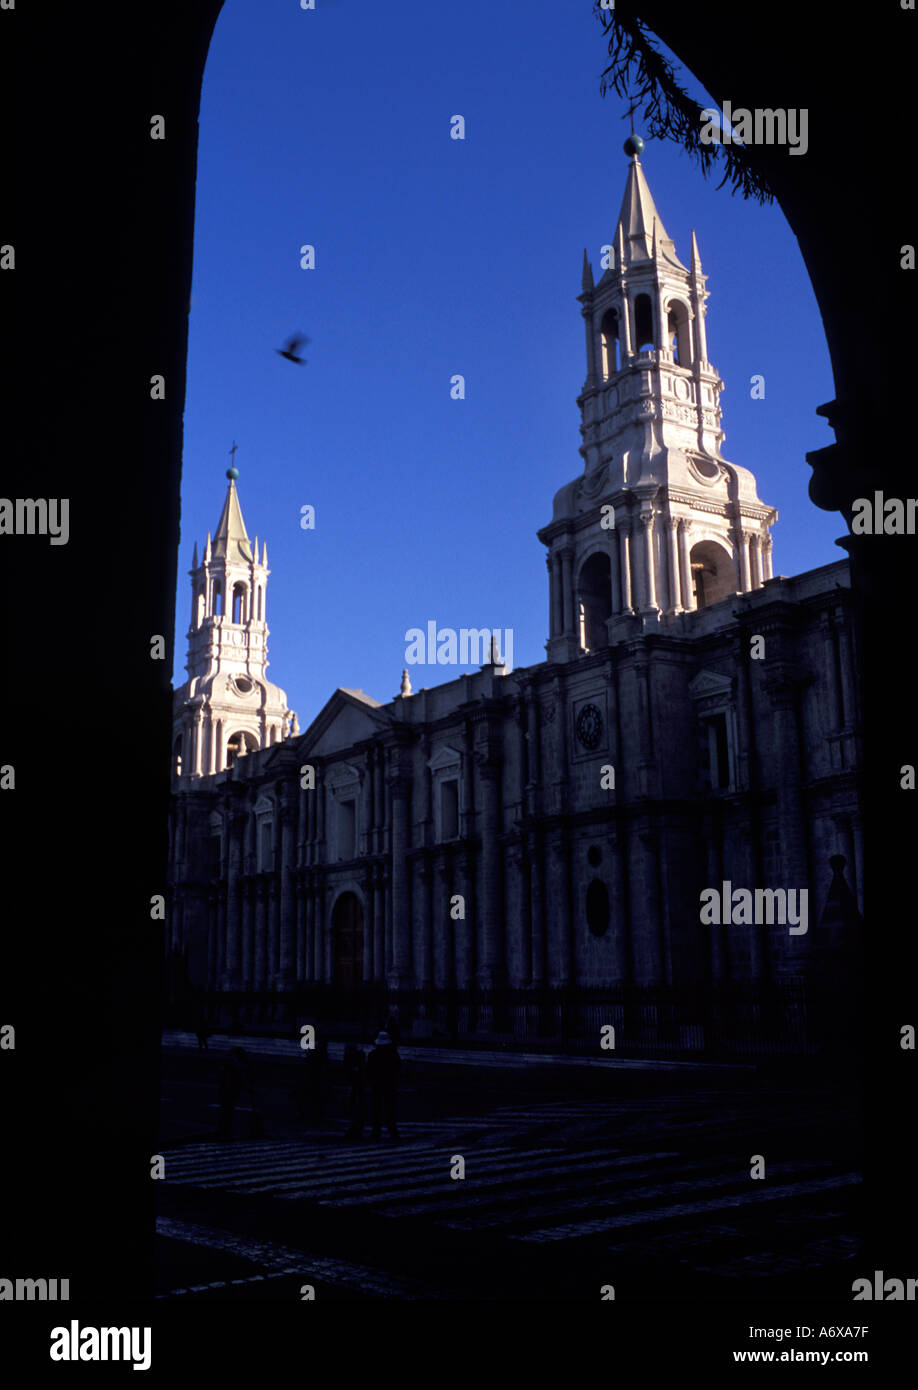 Arequipa s massive two towered cathedral founded 1612 dominates one full side of the Plaza de Armas Arequipa Peru - Stock Image